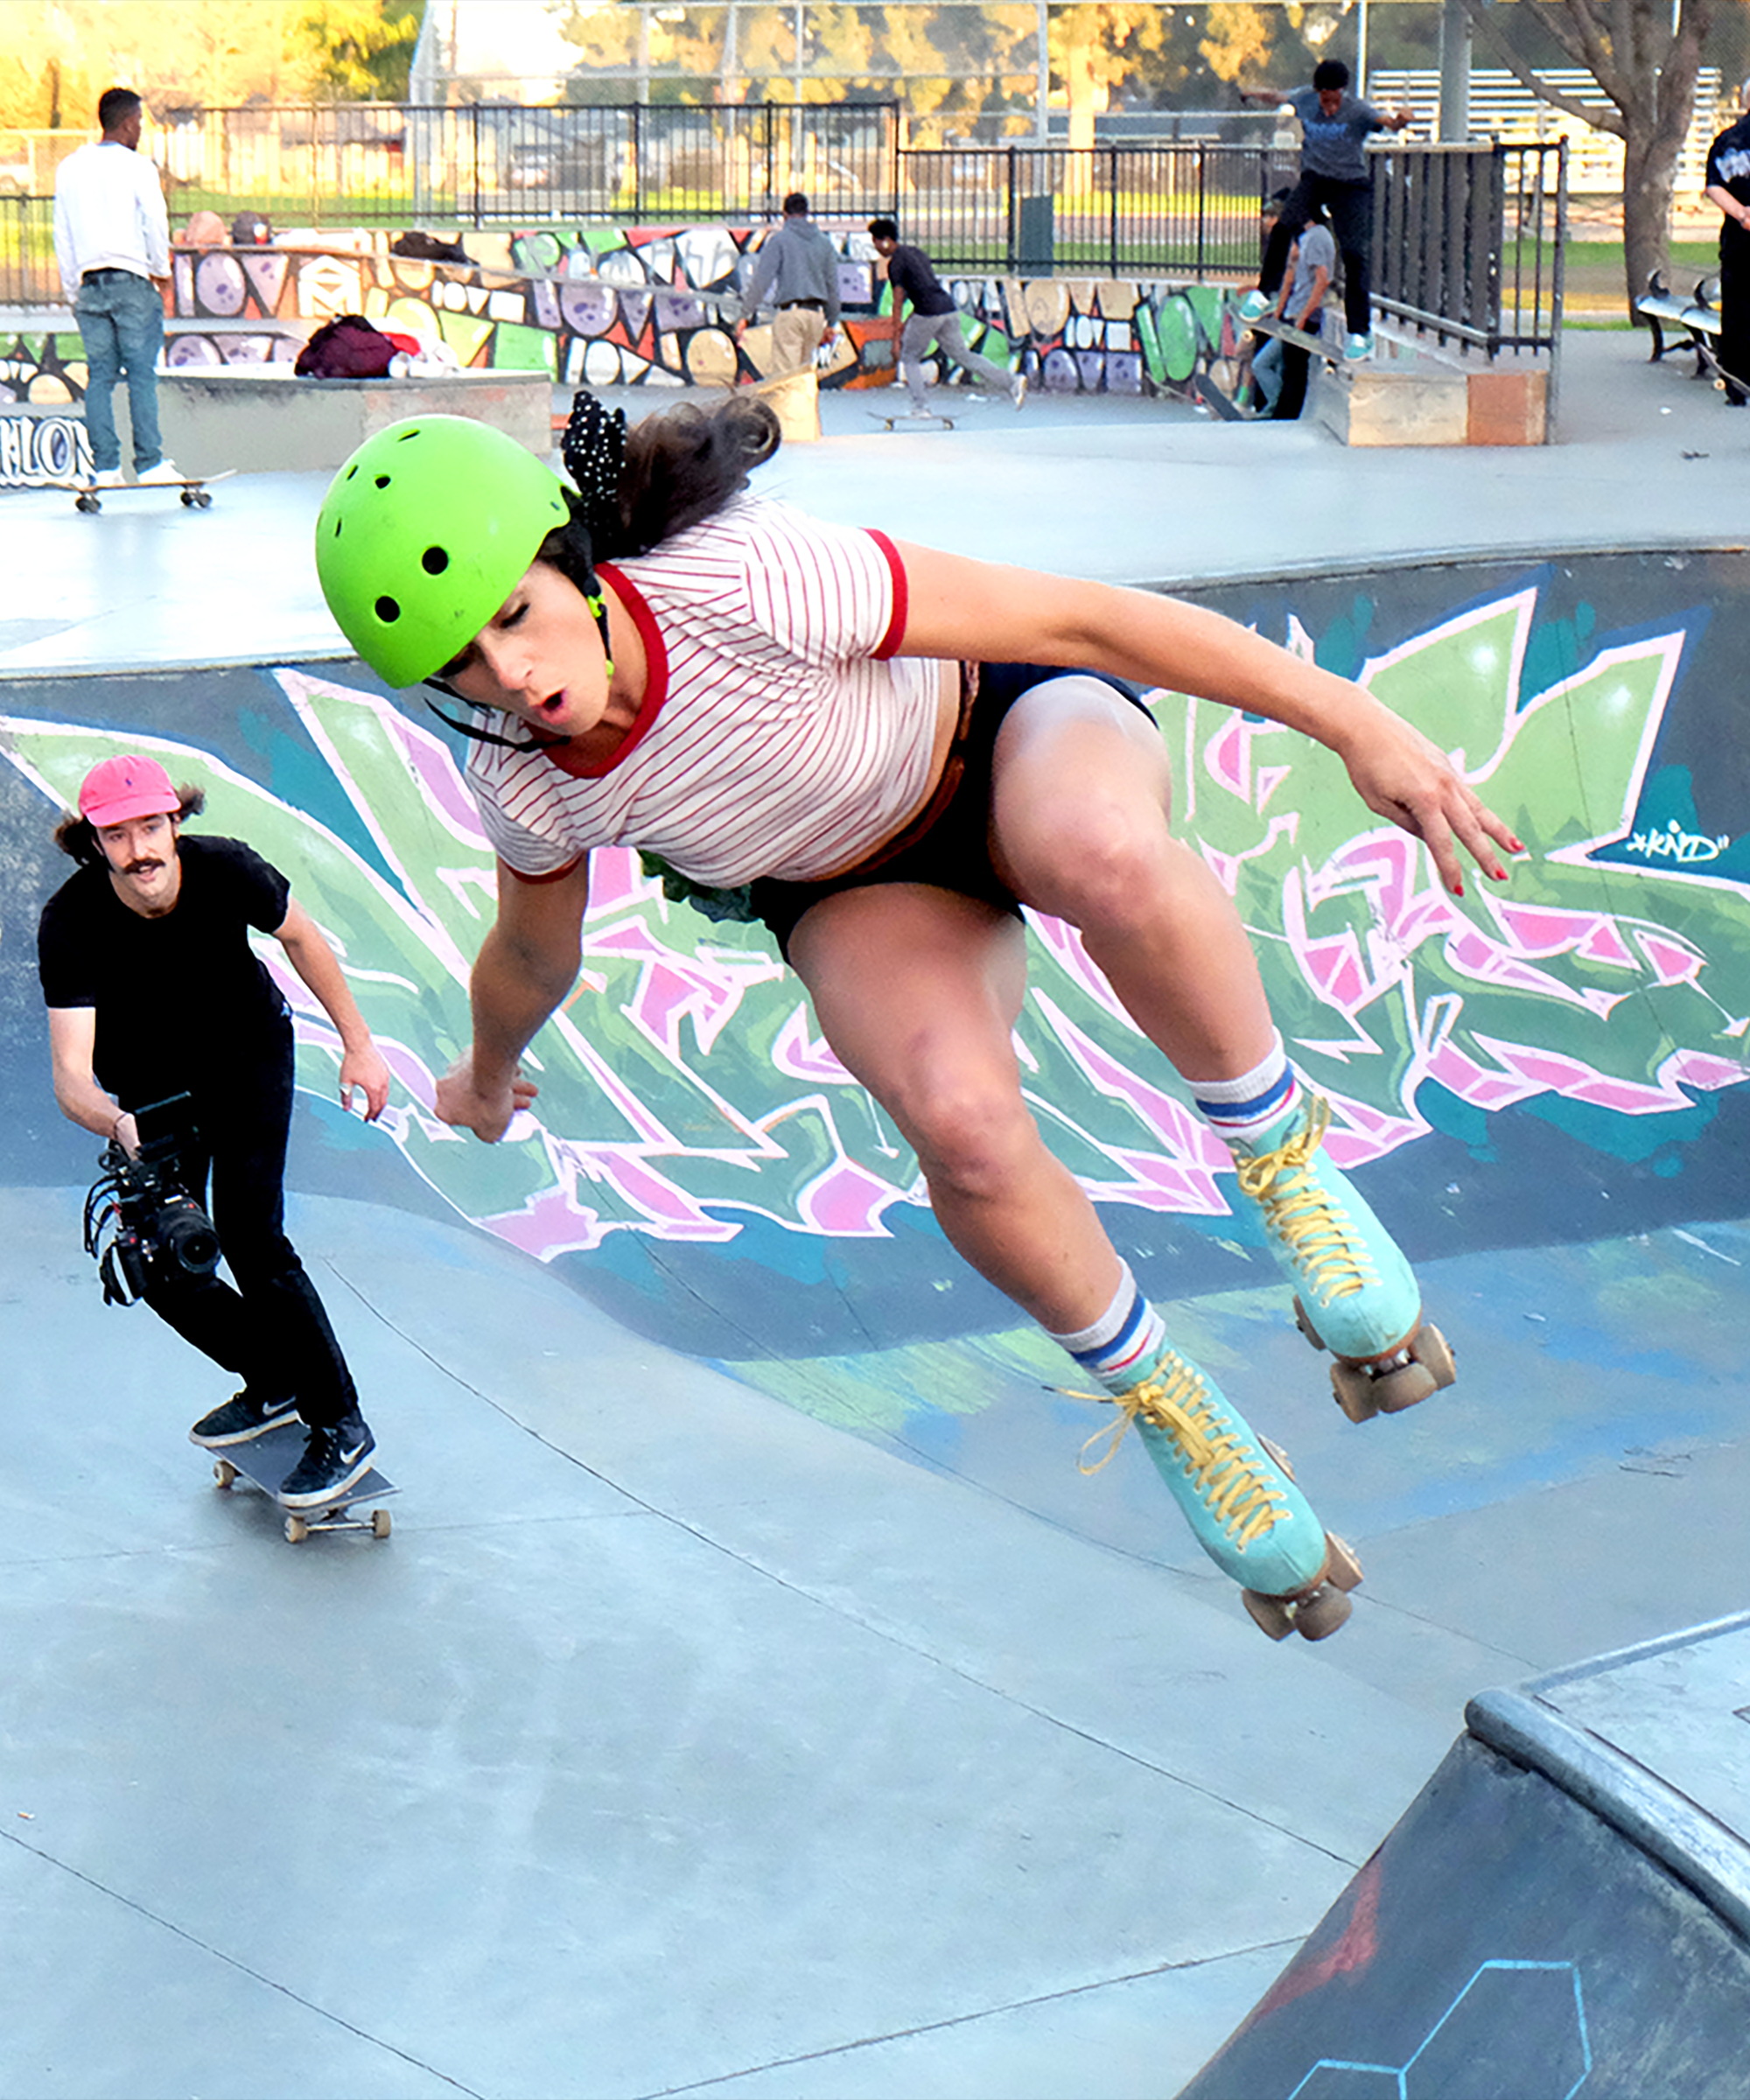 This All-Female Roller-Skating Club Is Seriously Badass ...